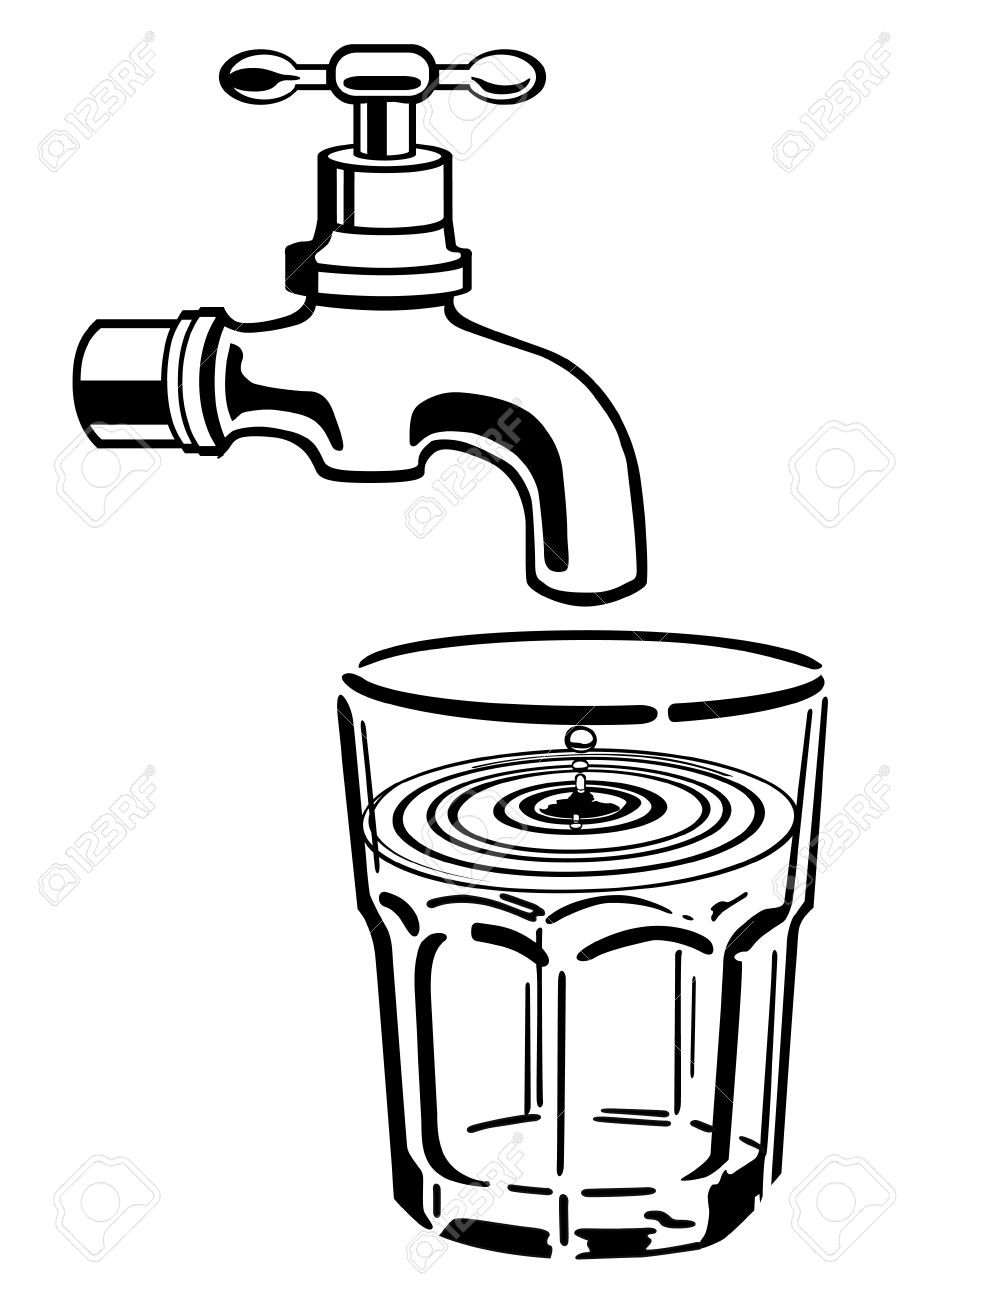 Faucet clipart water drawing. Free download best